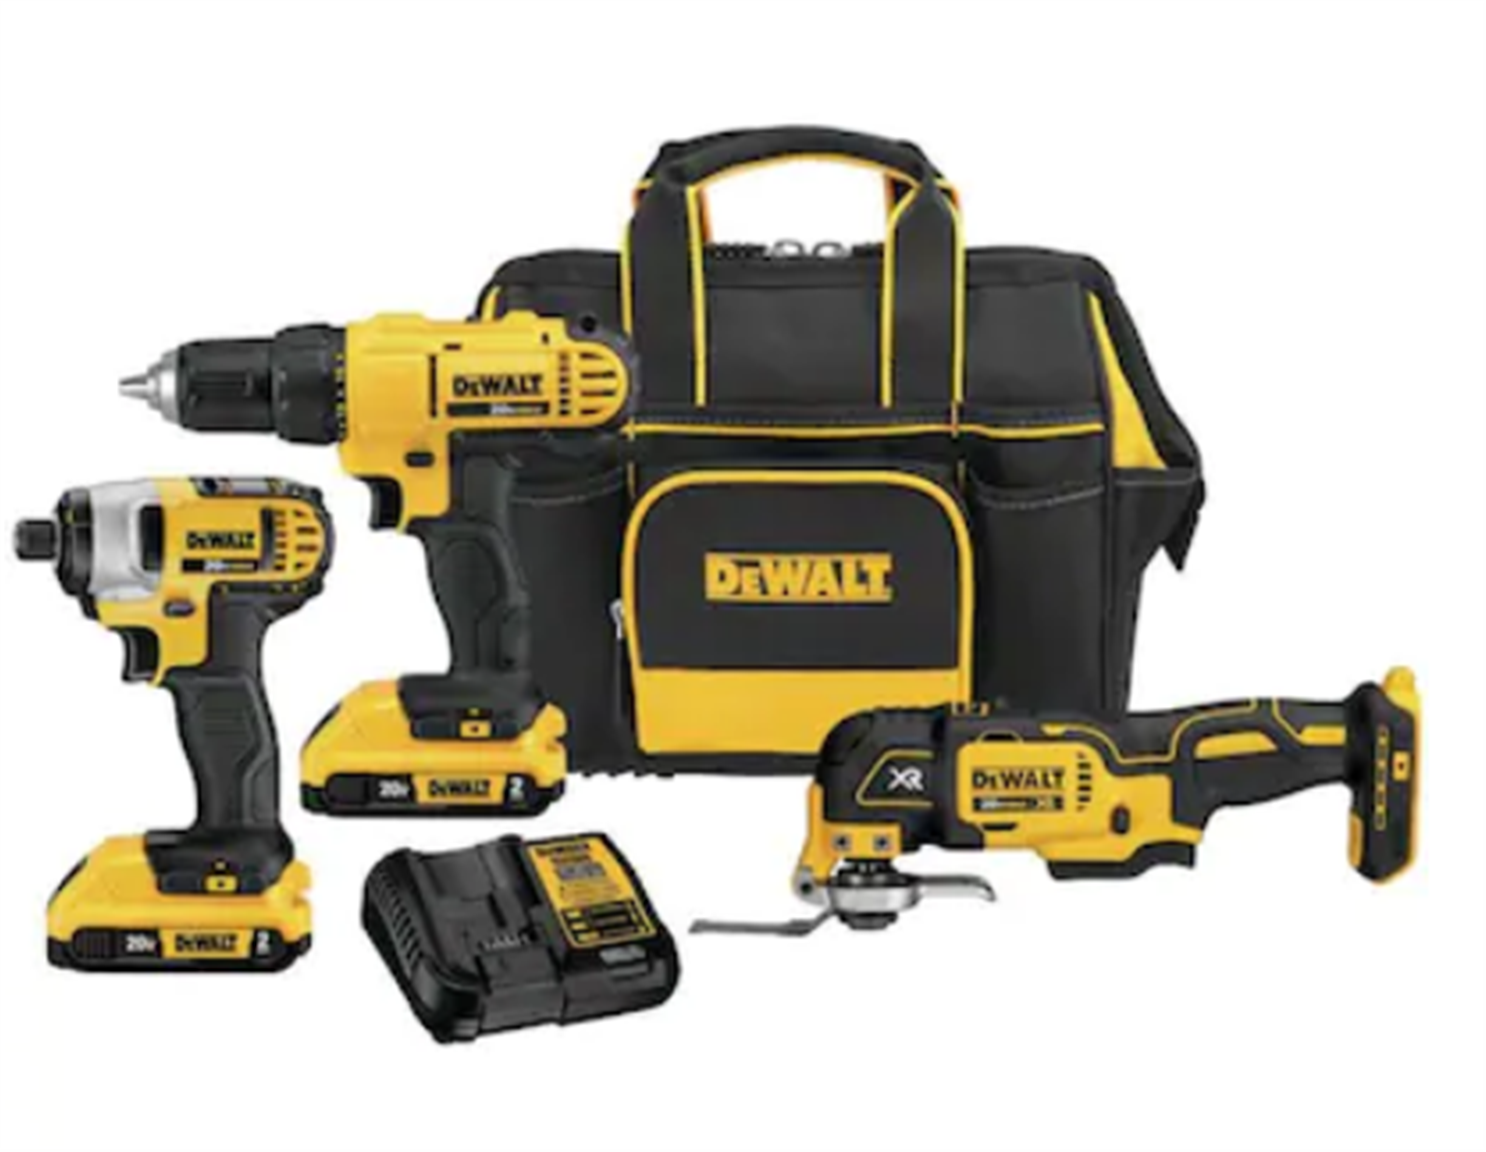 DEWALT 3-Tool 20-Volt Max Power Tool Combo Kit with Soft Case (Charger and 2-Batteries Included) Only $149, Reg $299 + Free Shipping!